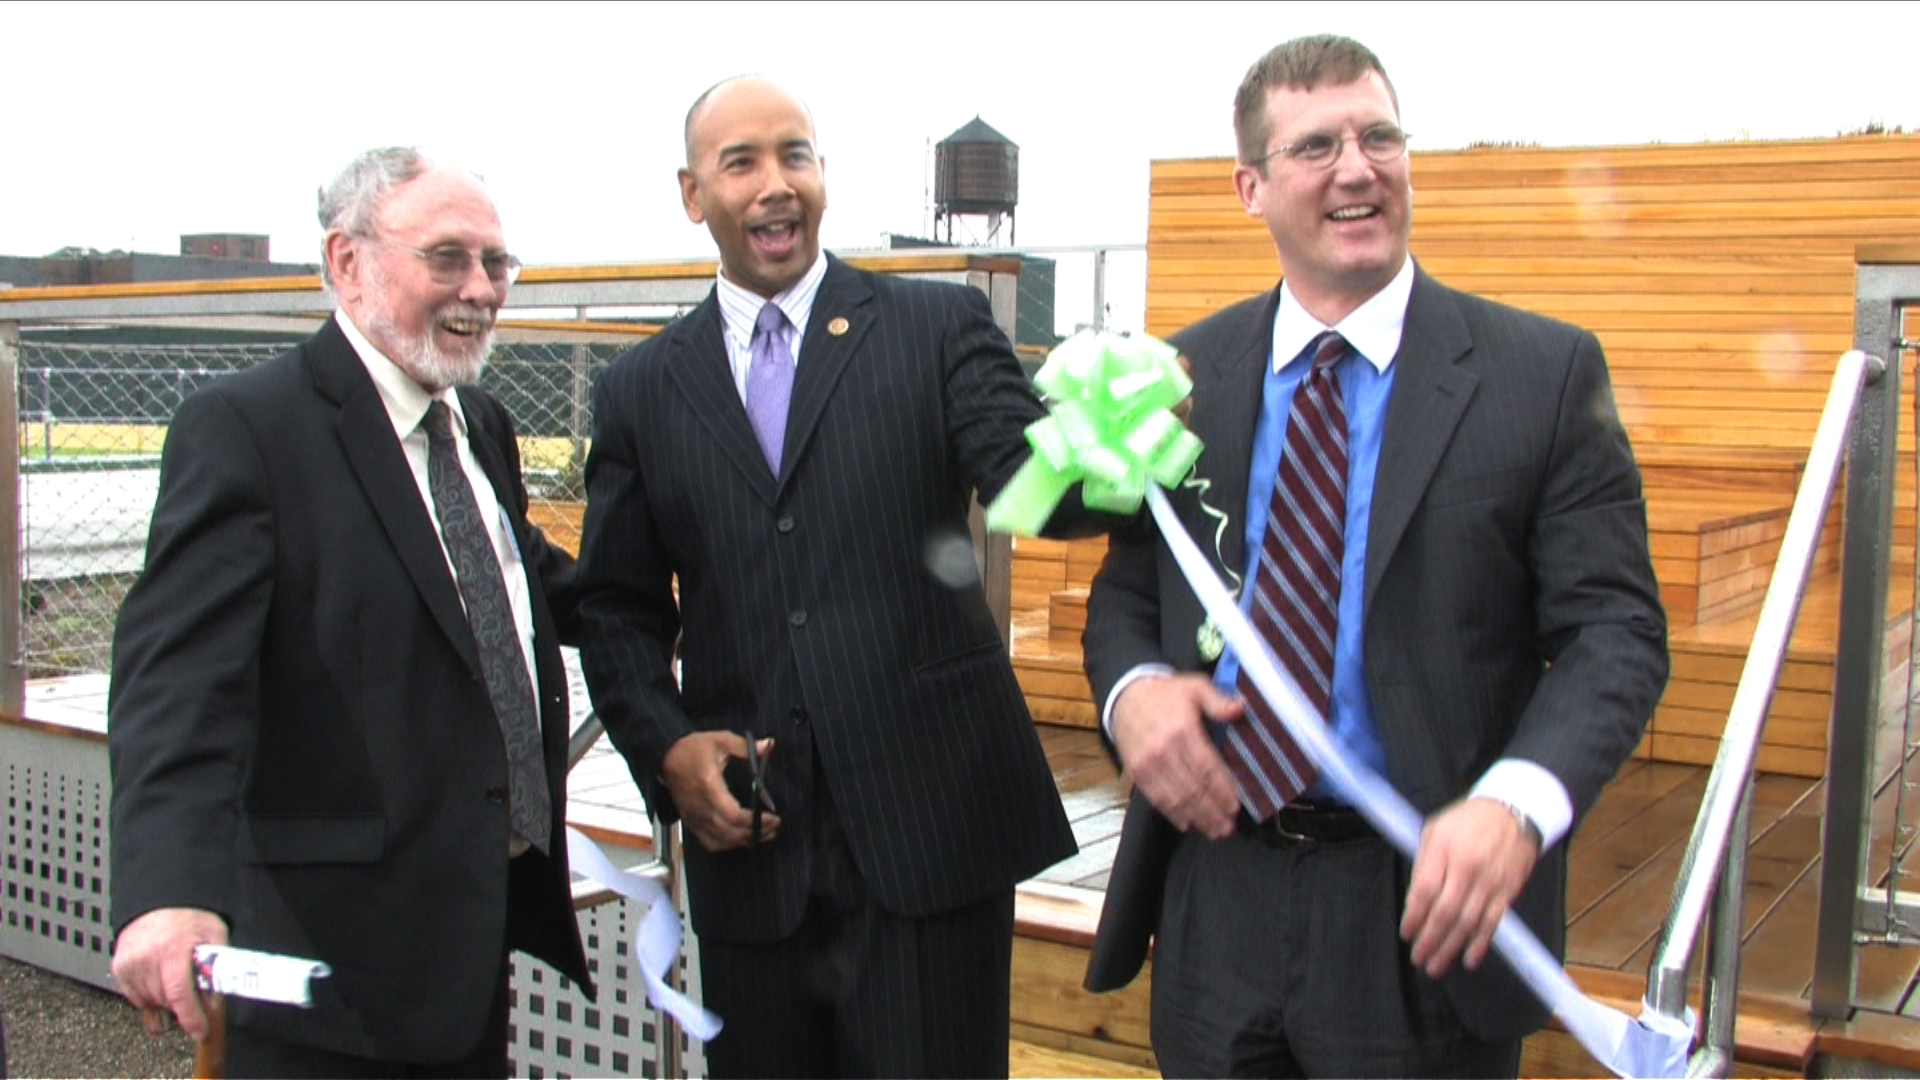 (L to R) David Hepinstall (Exec Dir of AEA), B.P. Rubén Díaz, and Daniel Buyer, Assistant Commissioner at NYS HCR.